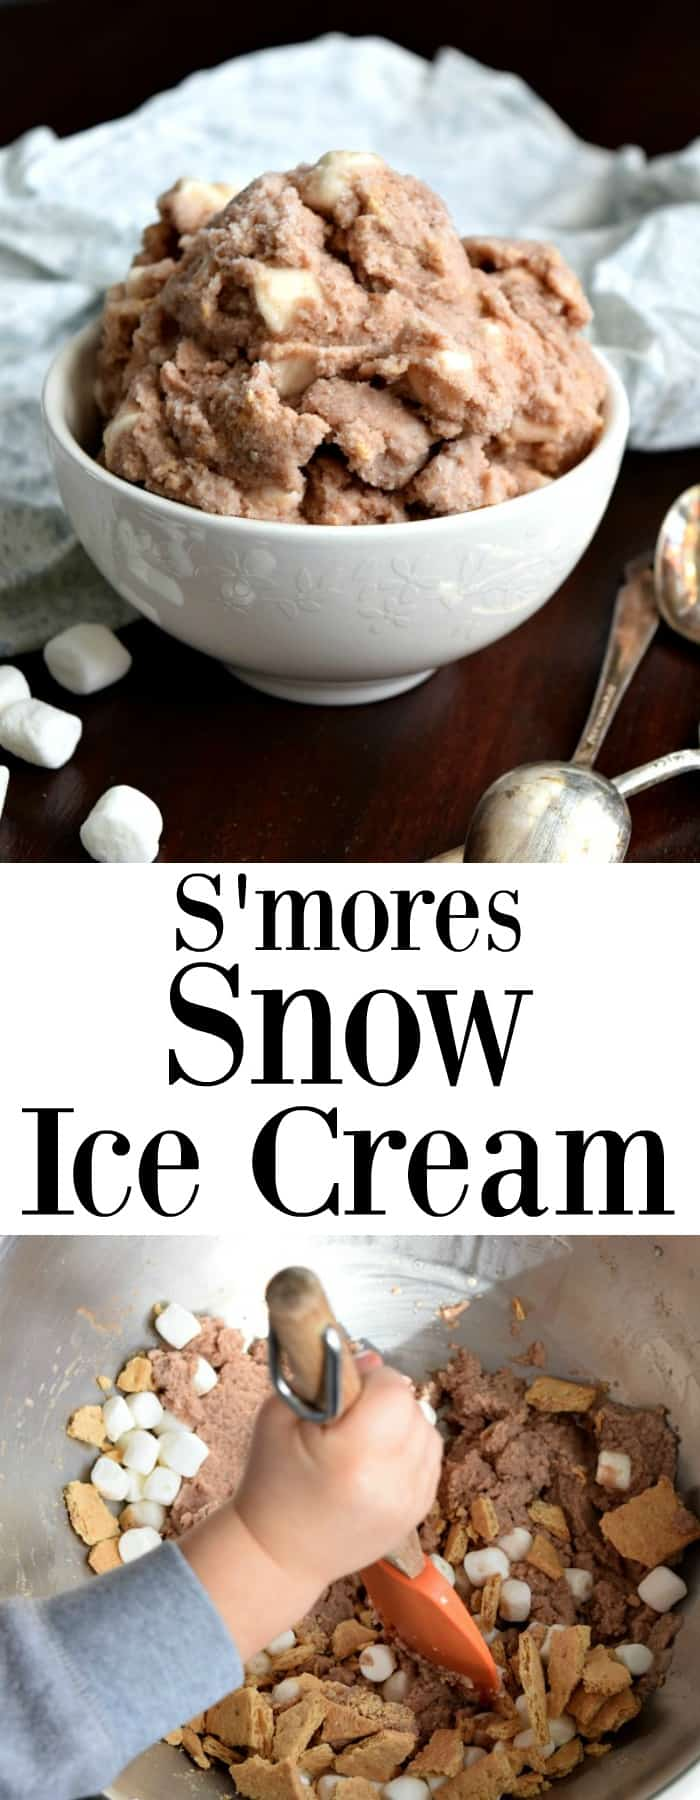 S'mores Snow Ice Cream Pinterest Pin #snow #snowday #icecream #snowicecream